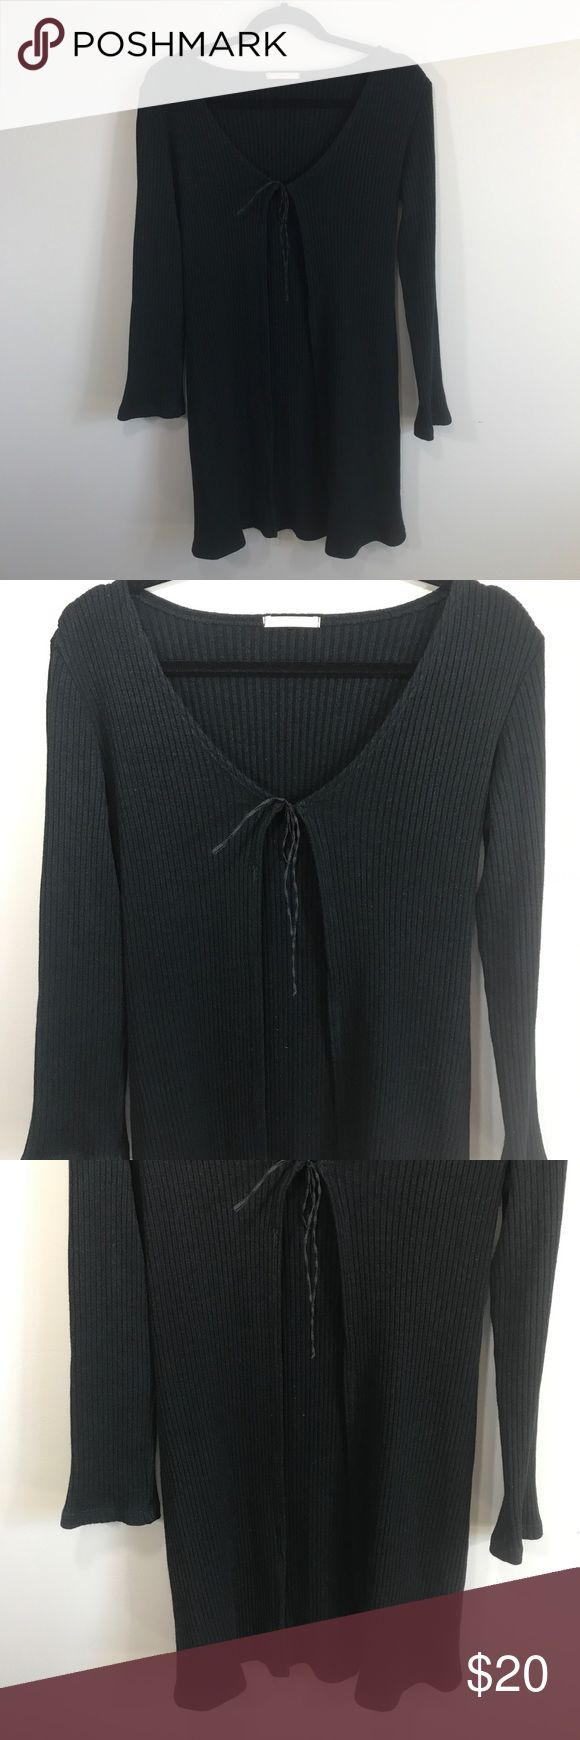 """Forever 21 Open Front Tie Long Sleeve Cardigan In excellent used condition. Ribbed. Long, covers butt. Ribbon tie on front. Can be worn open or tied. Very stretchy! Size S, no size tags so sizing is approximate! Please refer to measurements to ensure a proper fit! Pit to pit: 16"""" Length: 34"""" Forever 21 Sweaters Cardigans"""